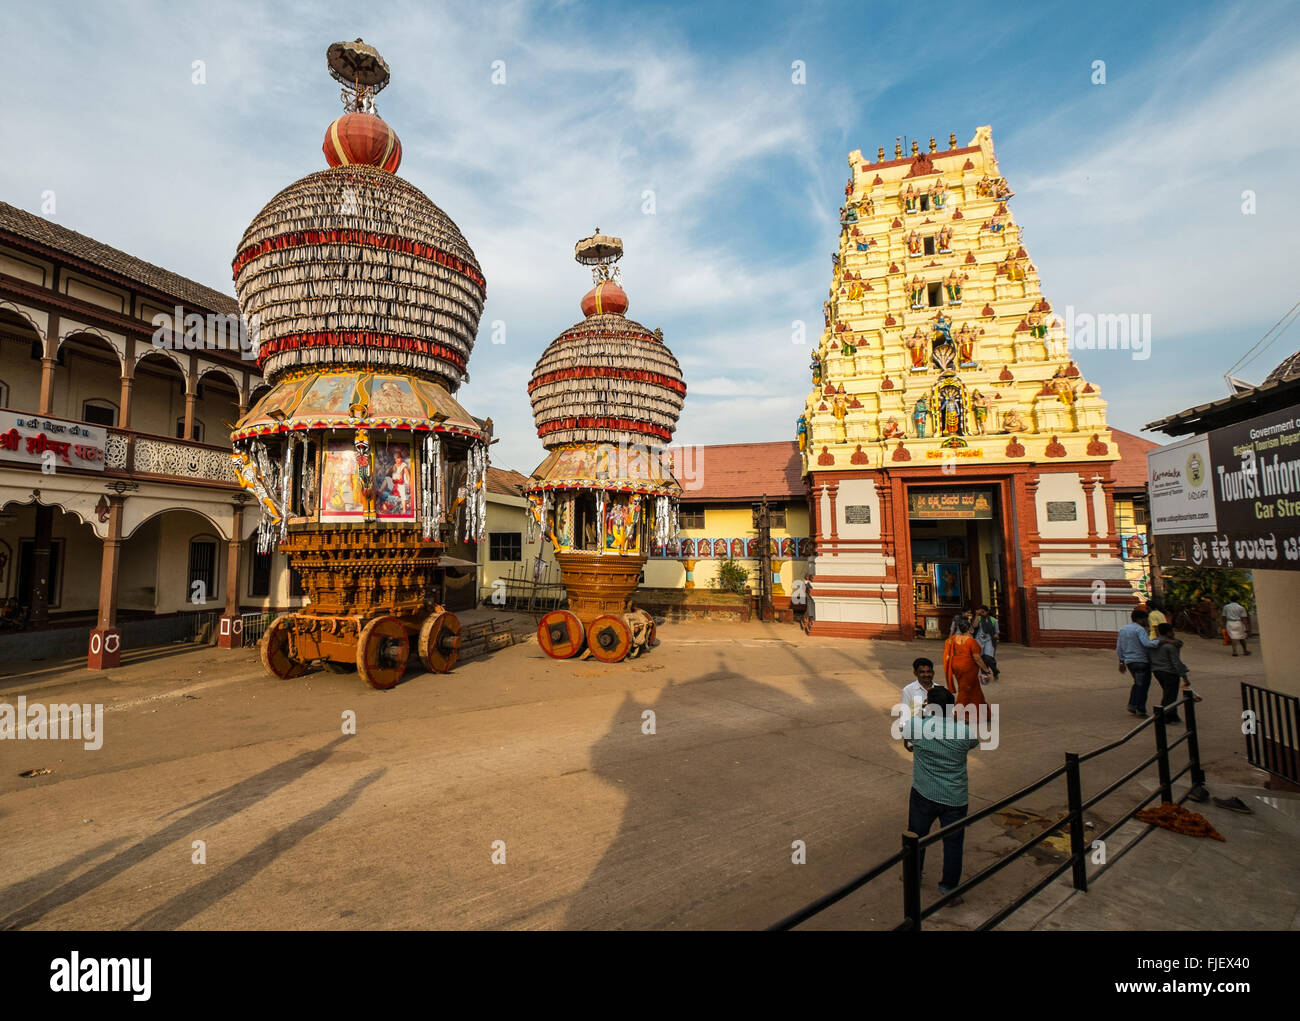 large ceremonial chariots at the krishna temple in udupi india FJEX40